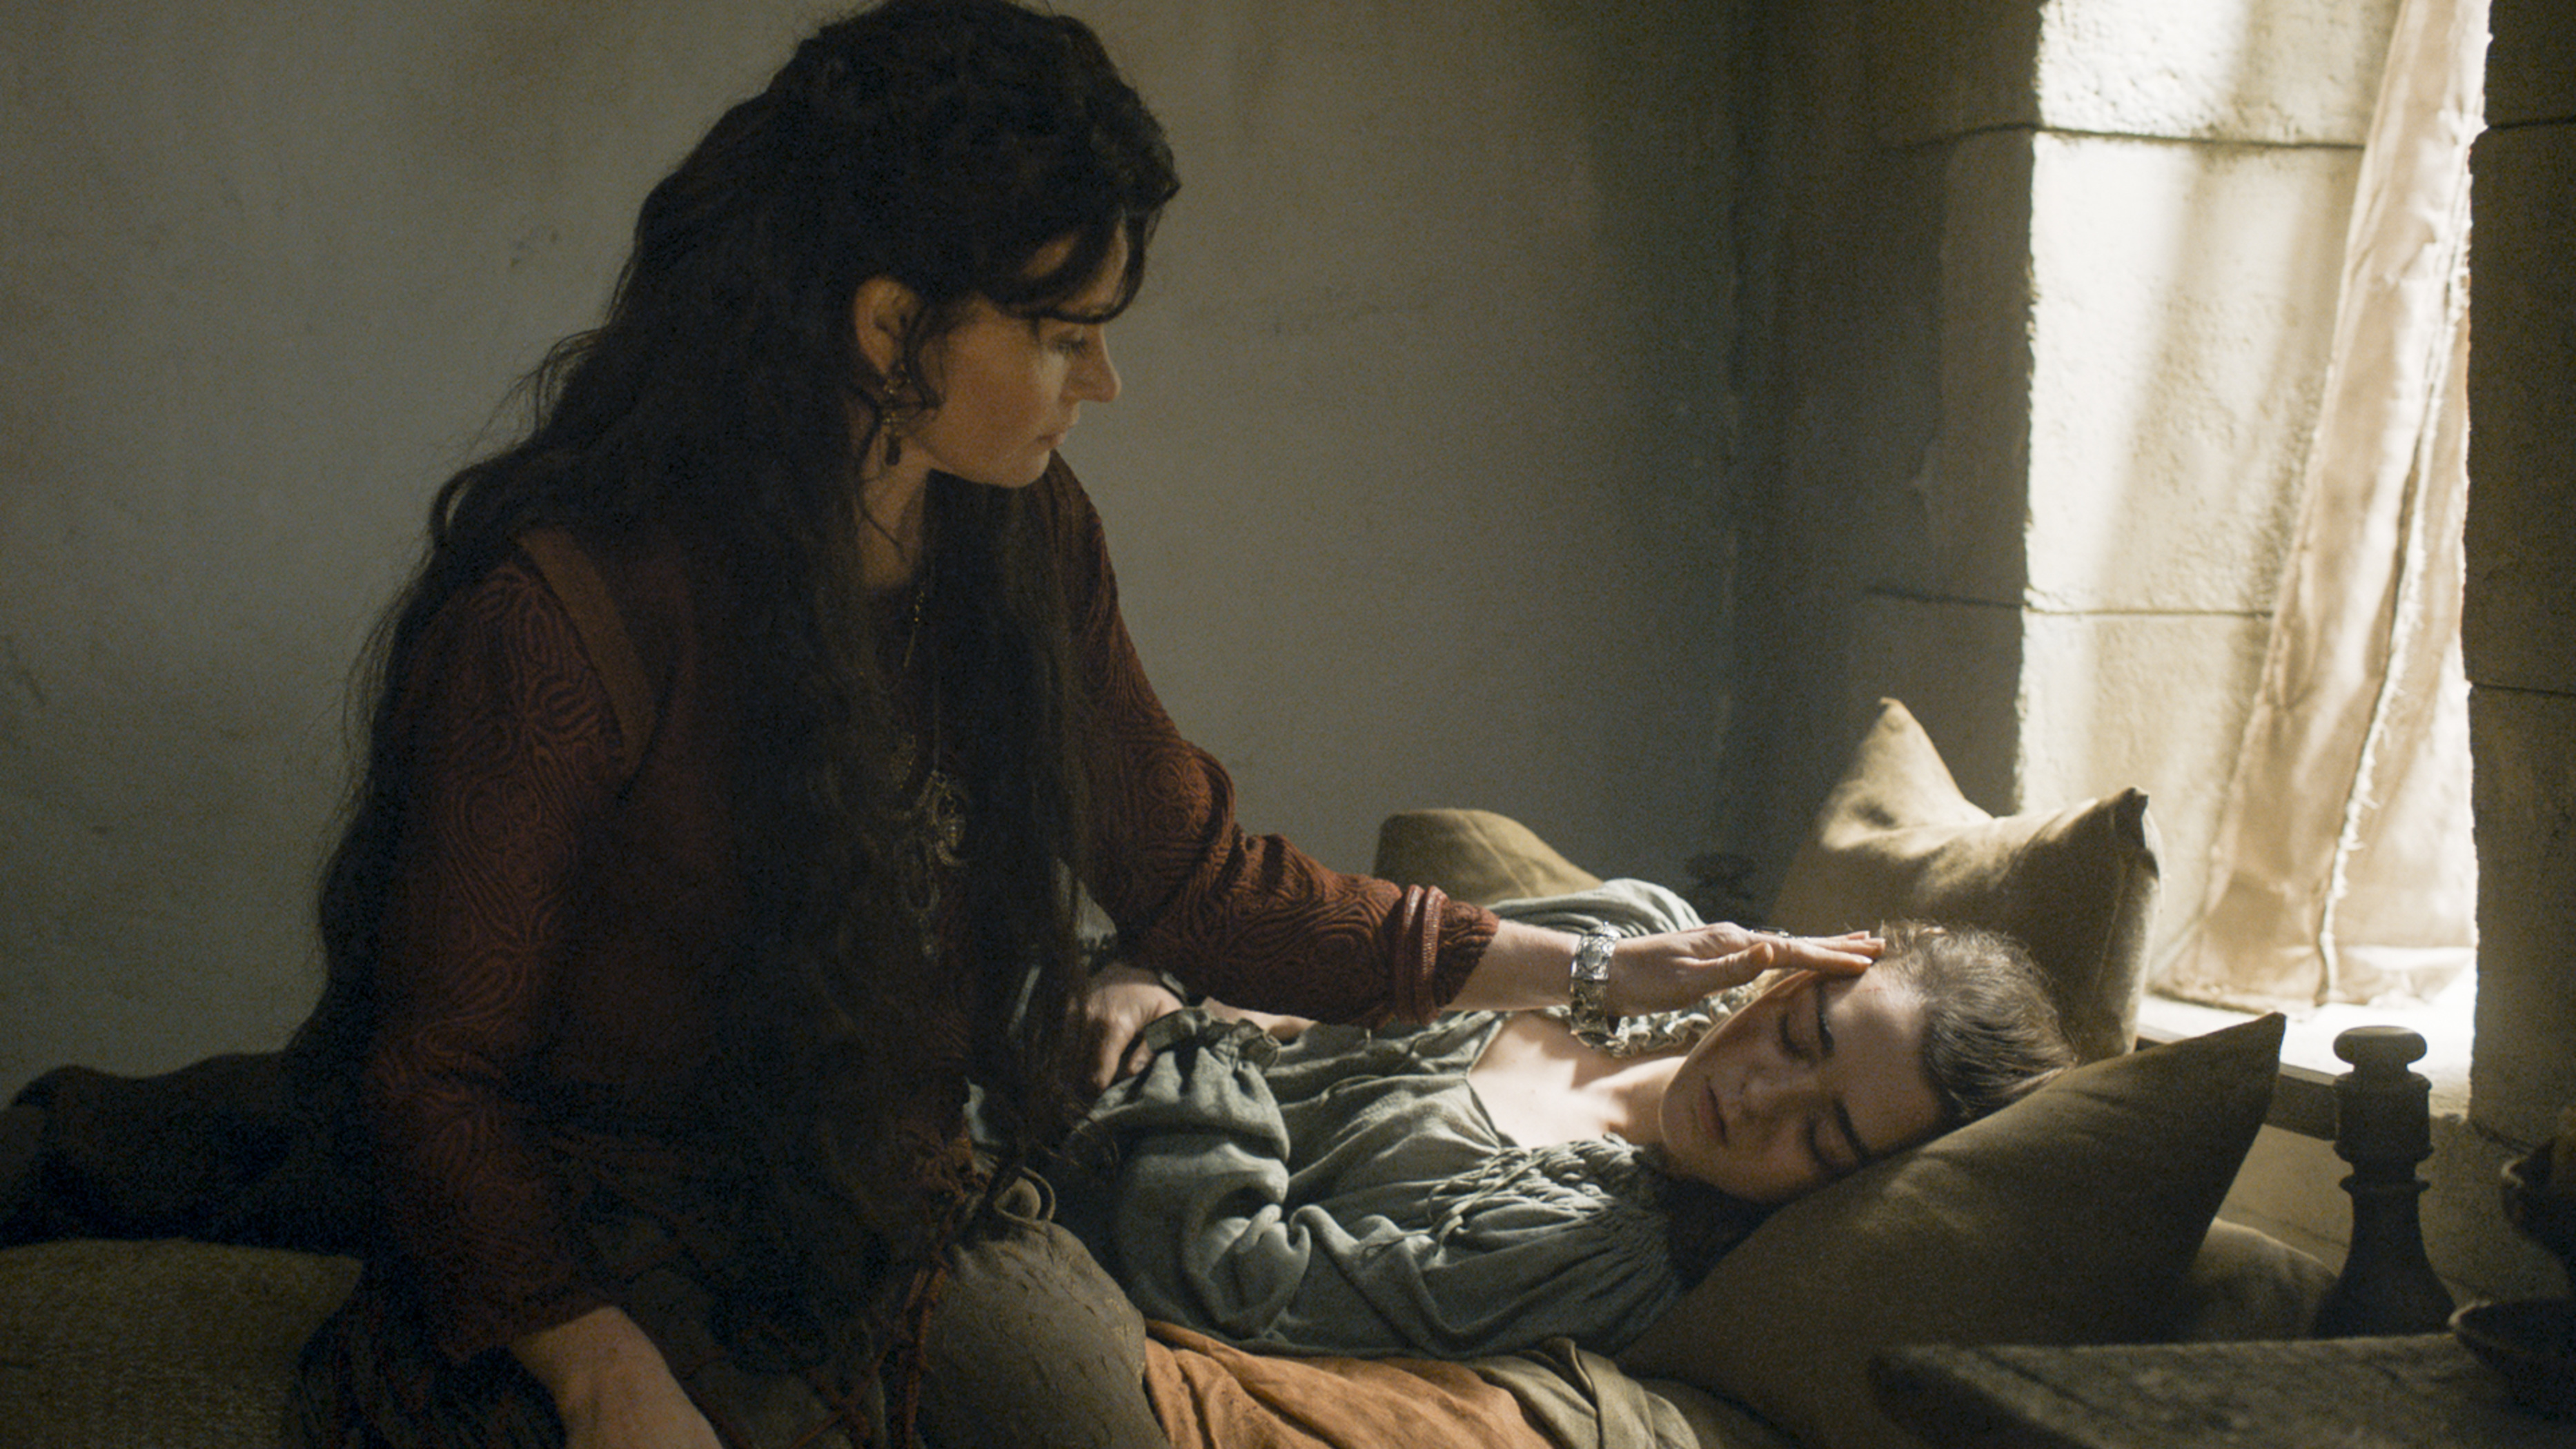 Essie Davis as Lady Crane and Maisie Williams as Arya Stark in 'Game of Thrones' Season 6, Episode 8